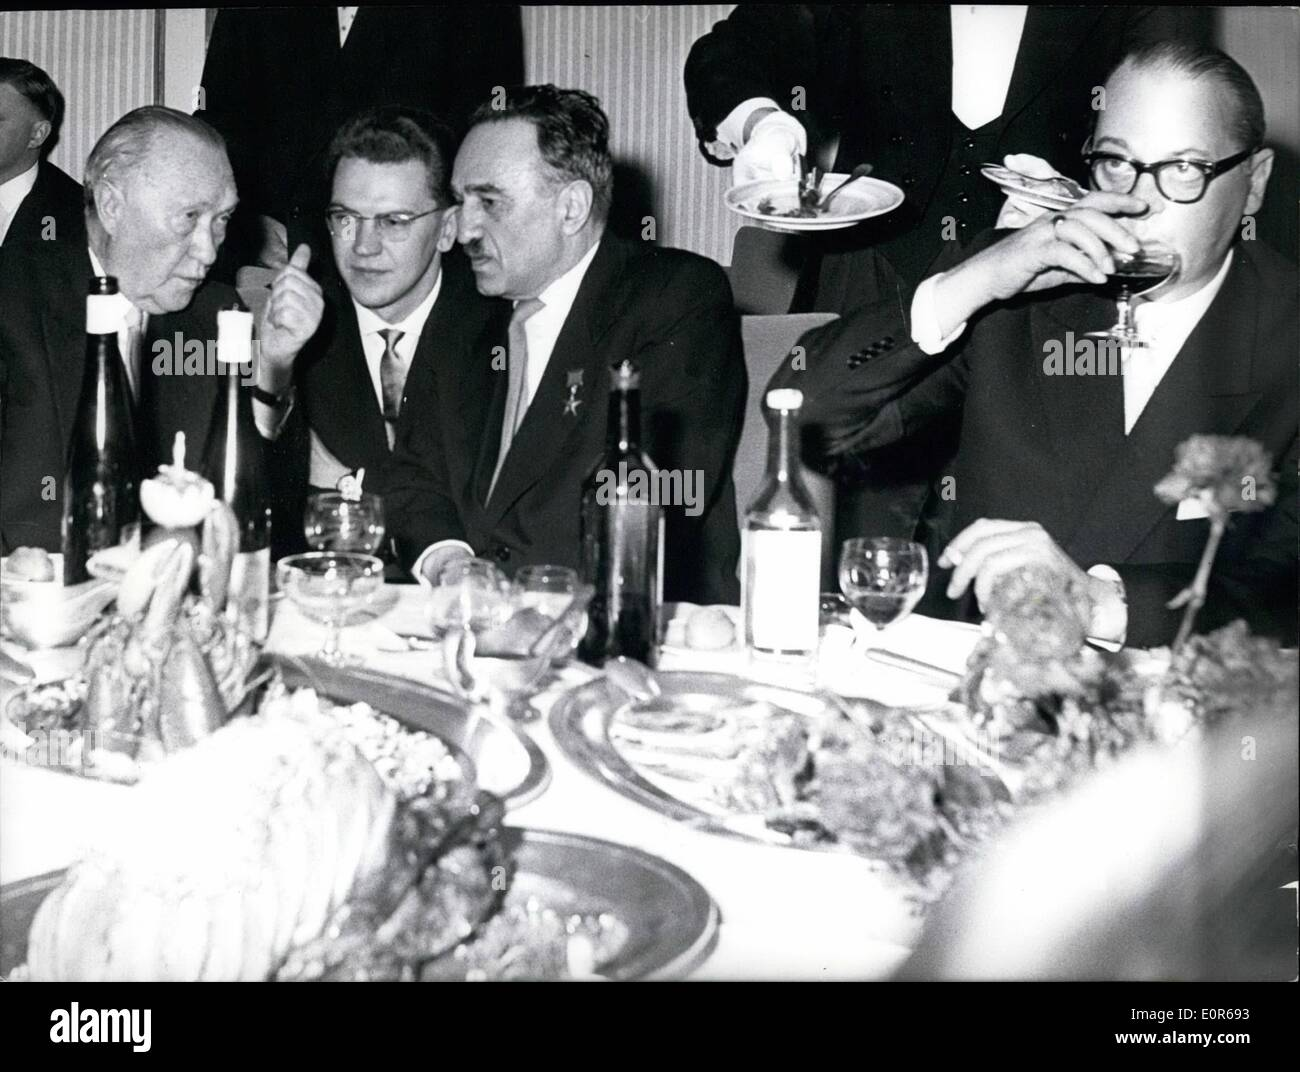 Apr. 04, 1958 - Soviet ambassador andraj Smiron gave a reception for 800 guests occasionally the German - soviet economy contract in the hotel ''konigshof'' in Bonn. photo shows f.l.t.r. Bhancellor Dr. Adenauer, an interpreter, vice - president Mikojan and foreign minister Heinrich Von Brentano on the table. - Stock Image